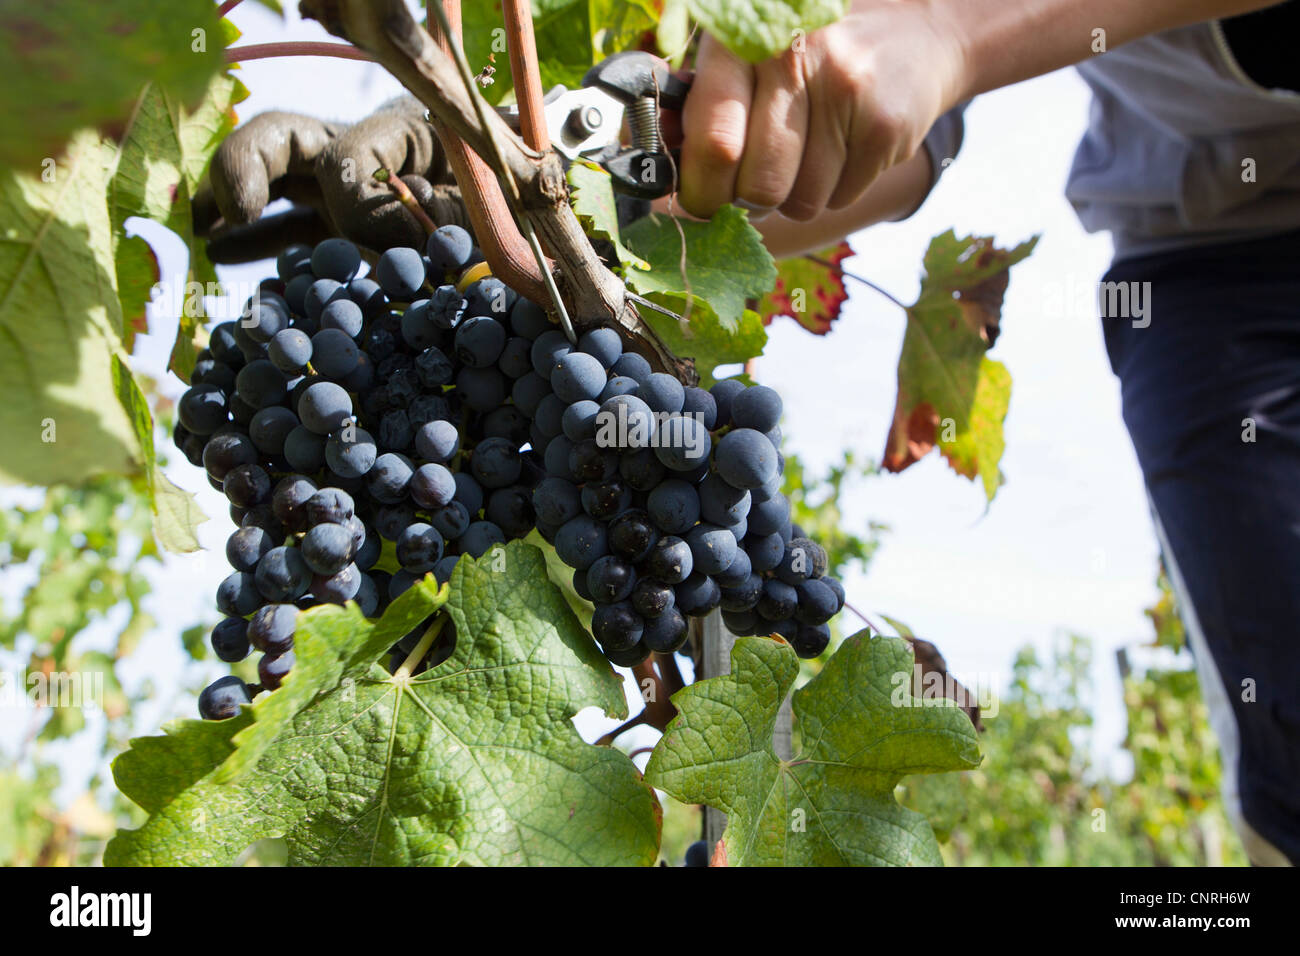 Worker harvesting grapes, cropped - Stock Image